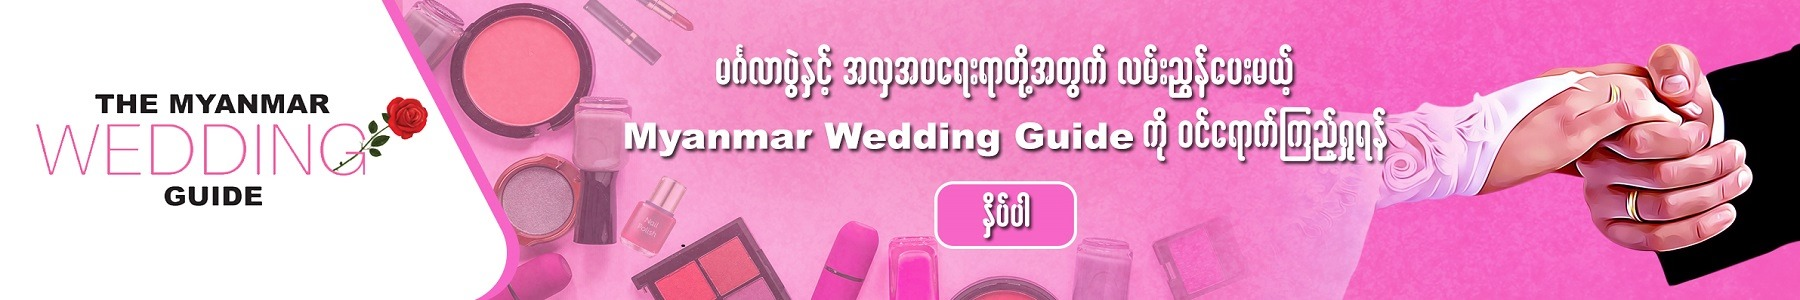 Wedding banner design 03 1